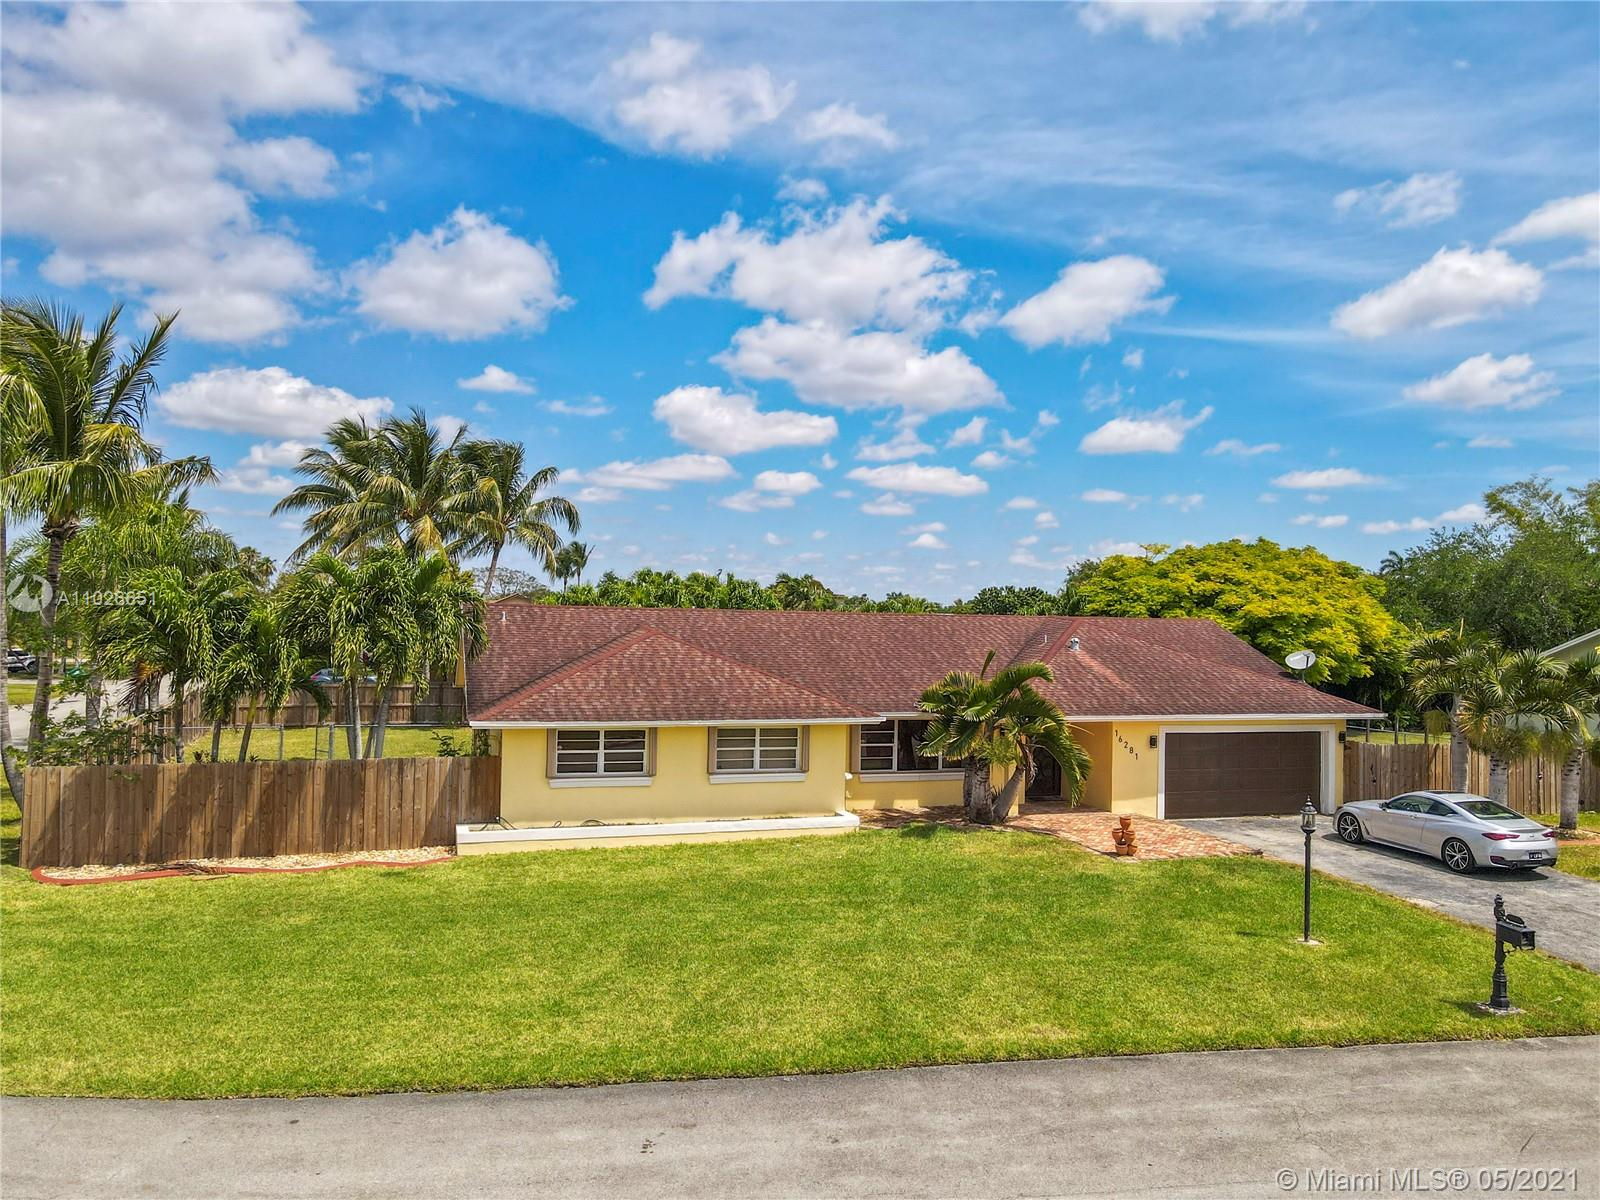 16281 SW 286th St Property Photo - Homestead, FL real estate listing